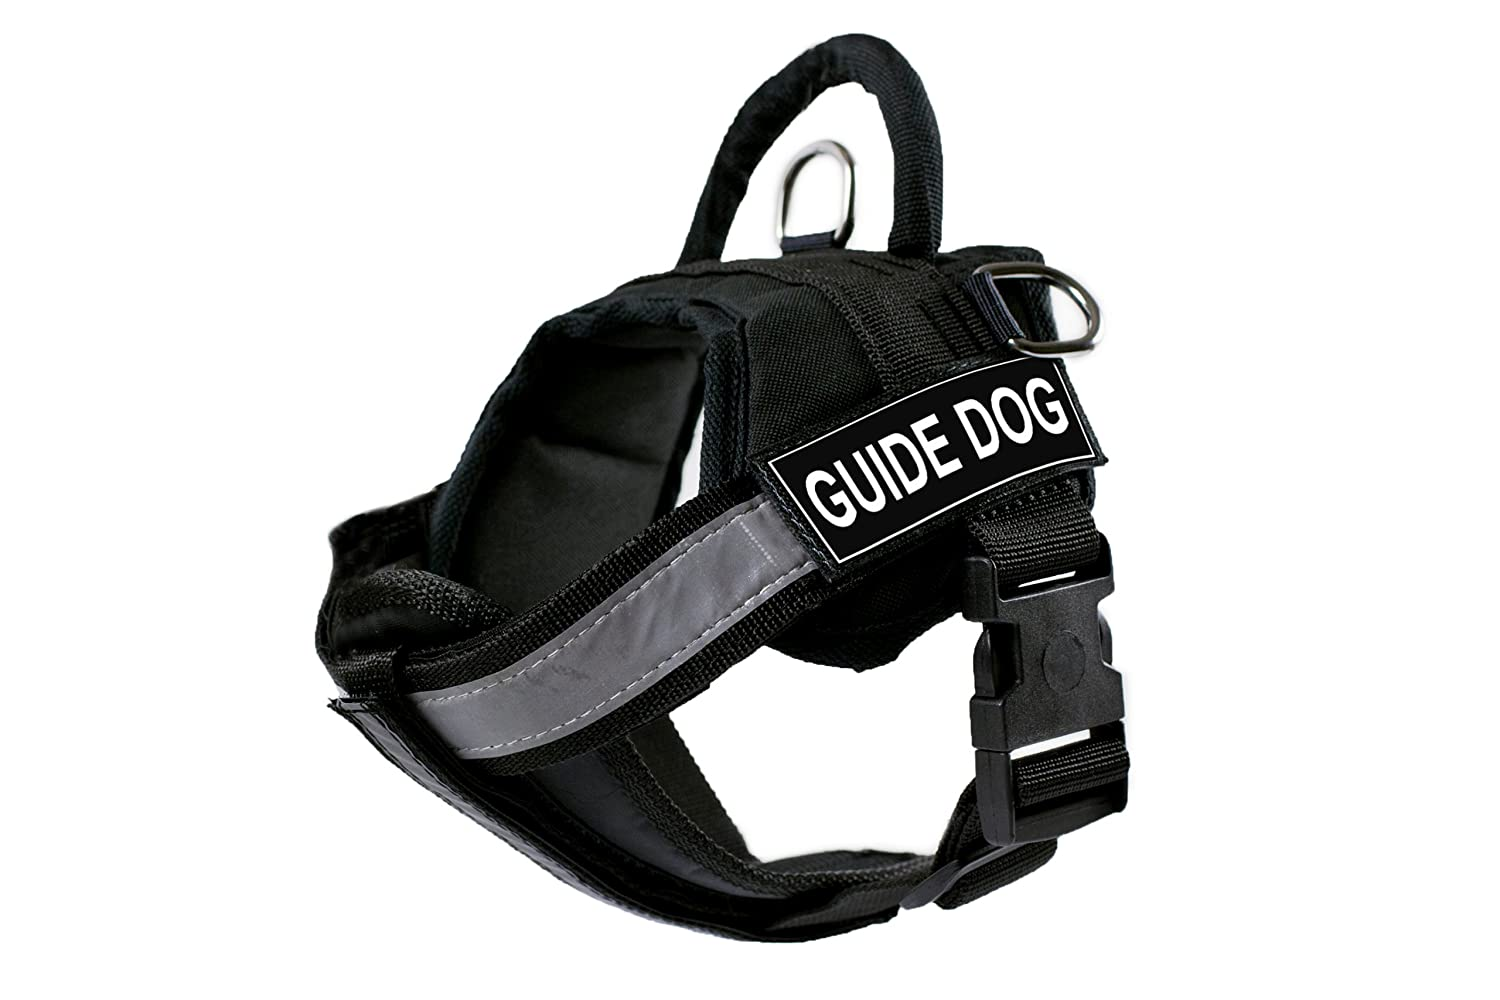 DT Works Harness with Padded Reflective Chest Straps, Guide Dog, Black, Small, Fits Girth Size  25-Inch to 34-Inch